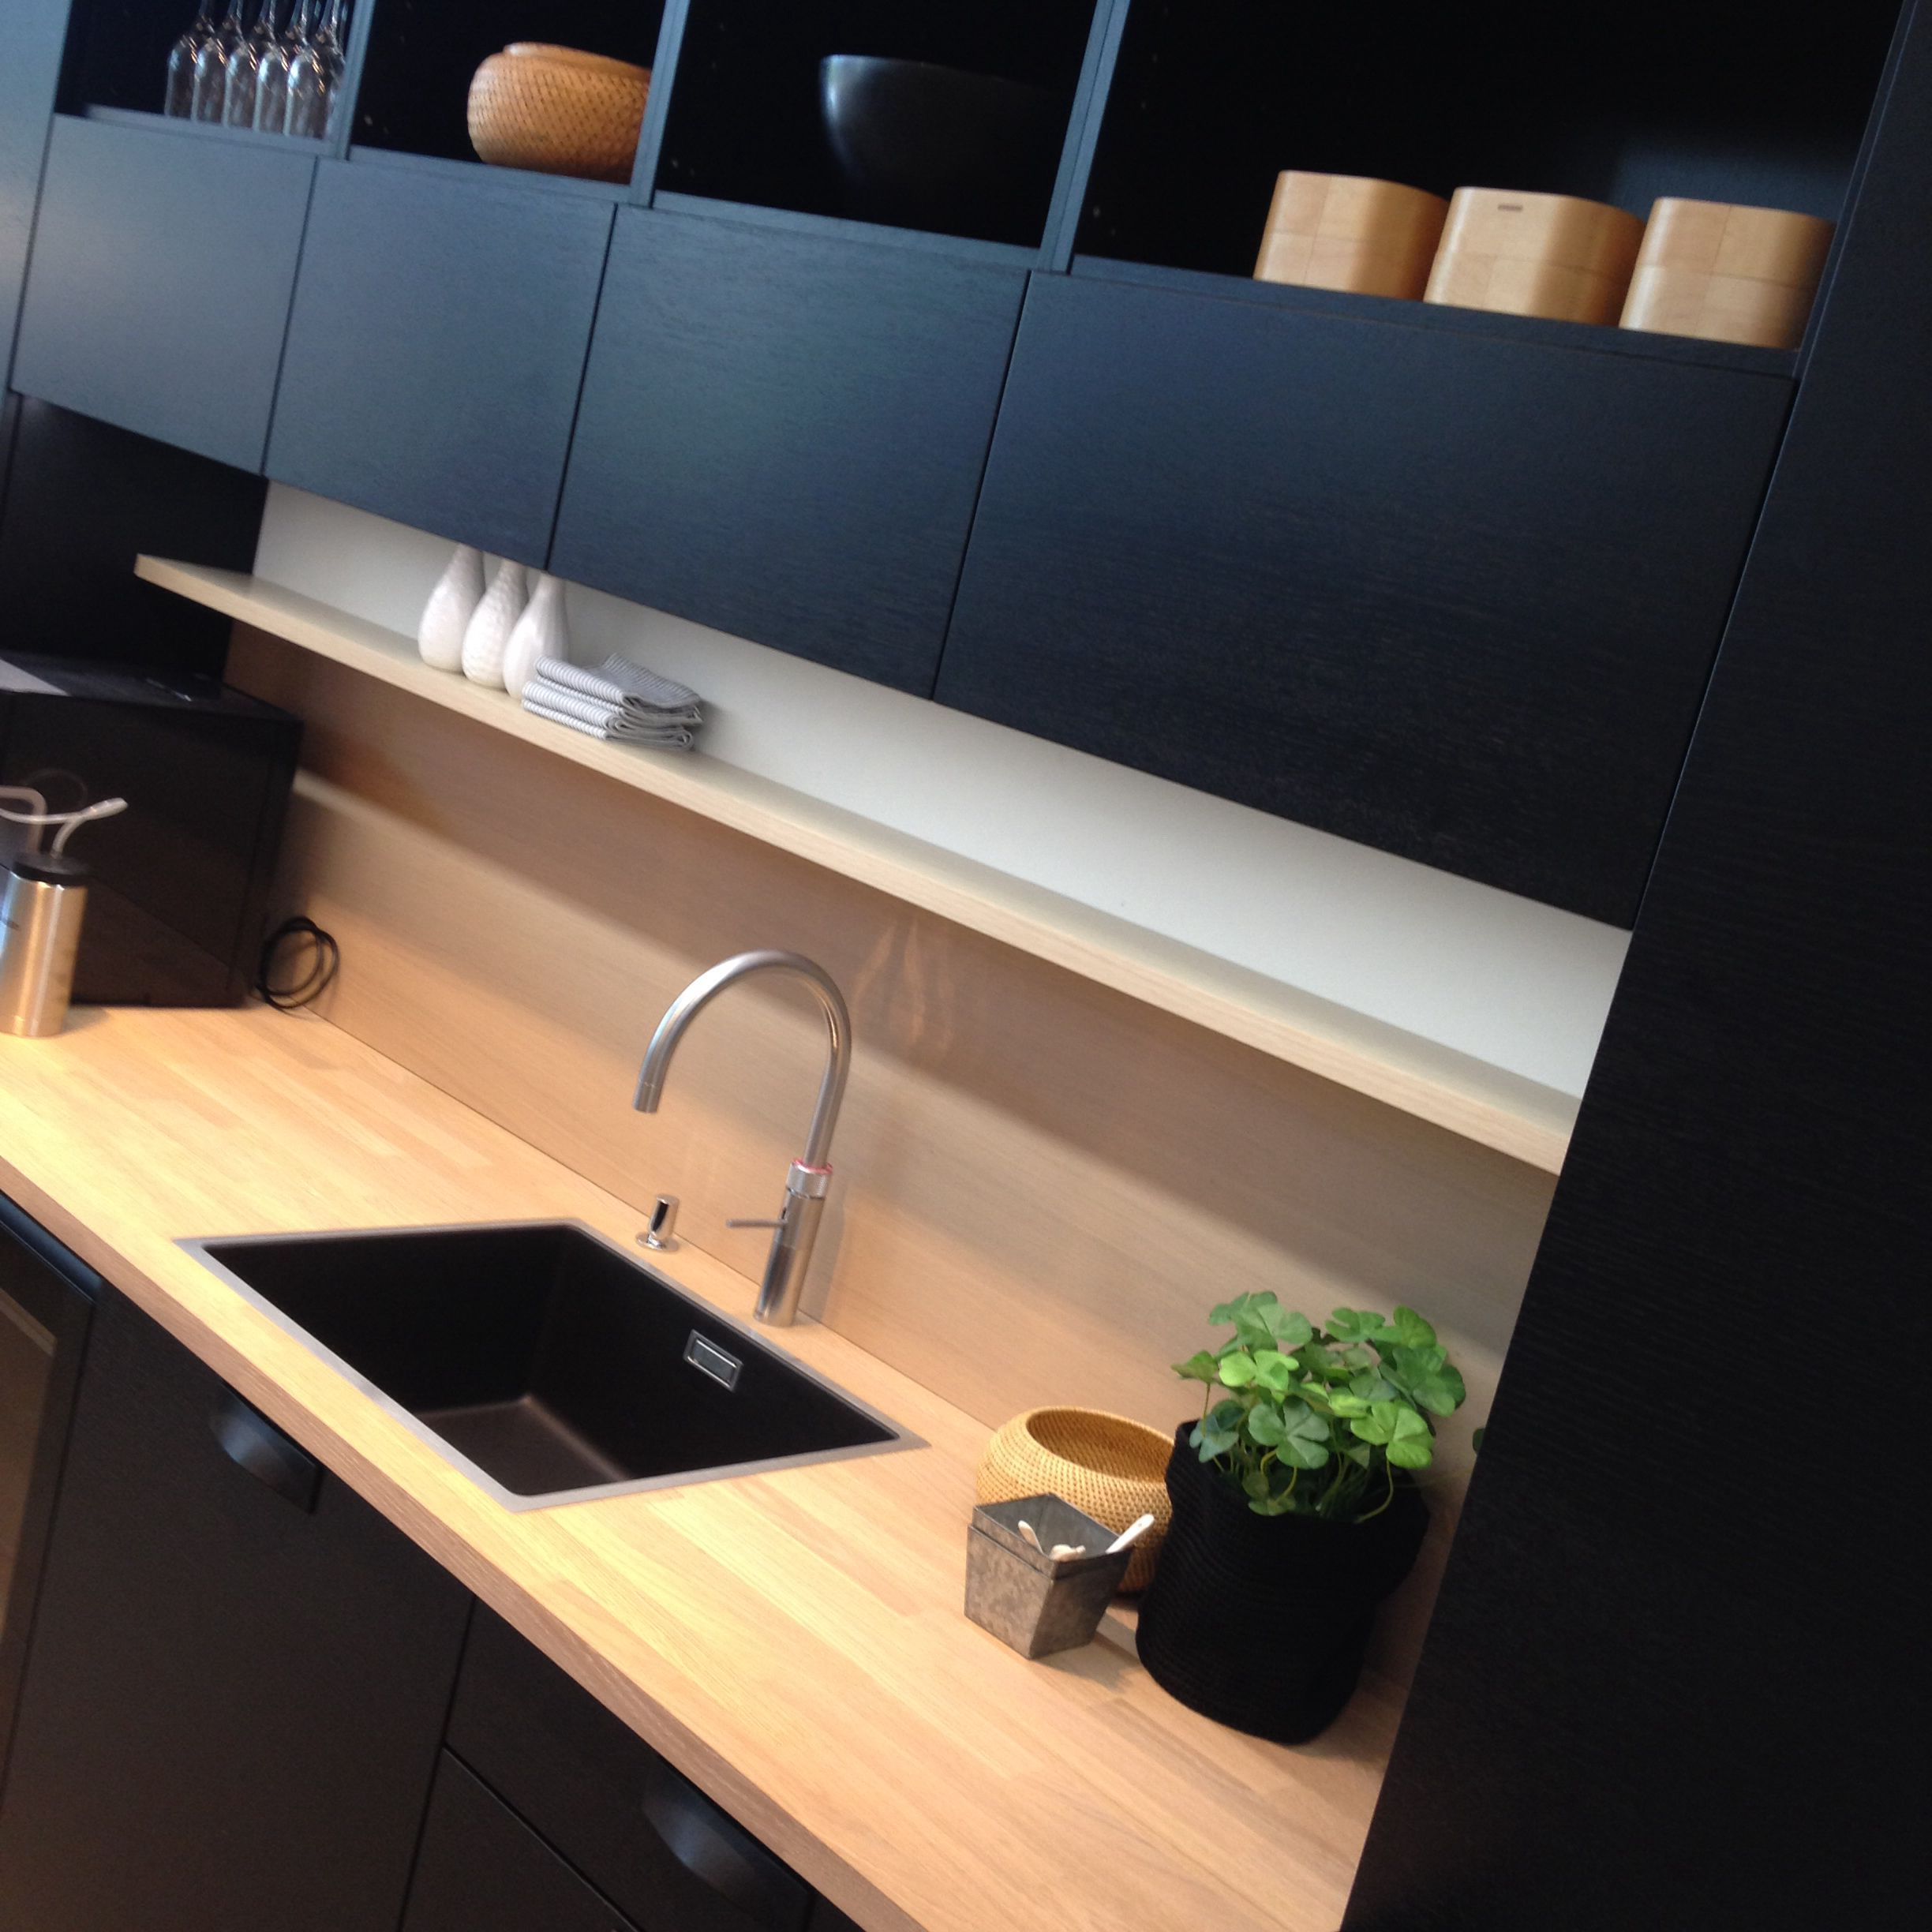 Hth Kjøkkenforum Alnabru Hth Kitchen Alnabru Architecture More I 2019 Kitchen Decor